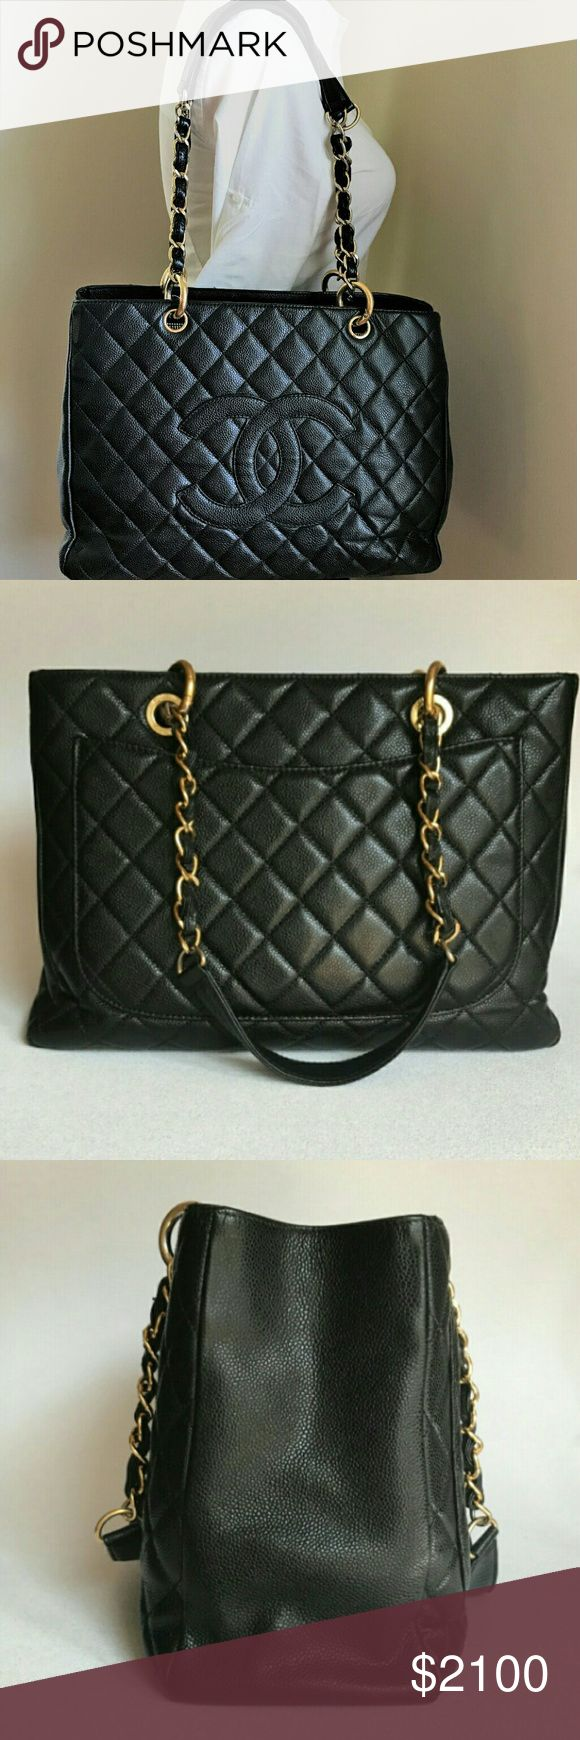 Black Caviar Pre owned Chanel Grand Shopping Tote Pre owned, in Fair condition No scuffs, just some bends on the sides. Price is firm, no trades offers please. CHANEL Bags Totes